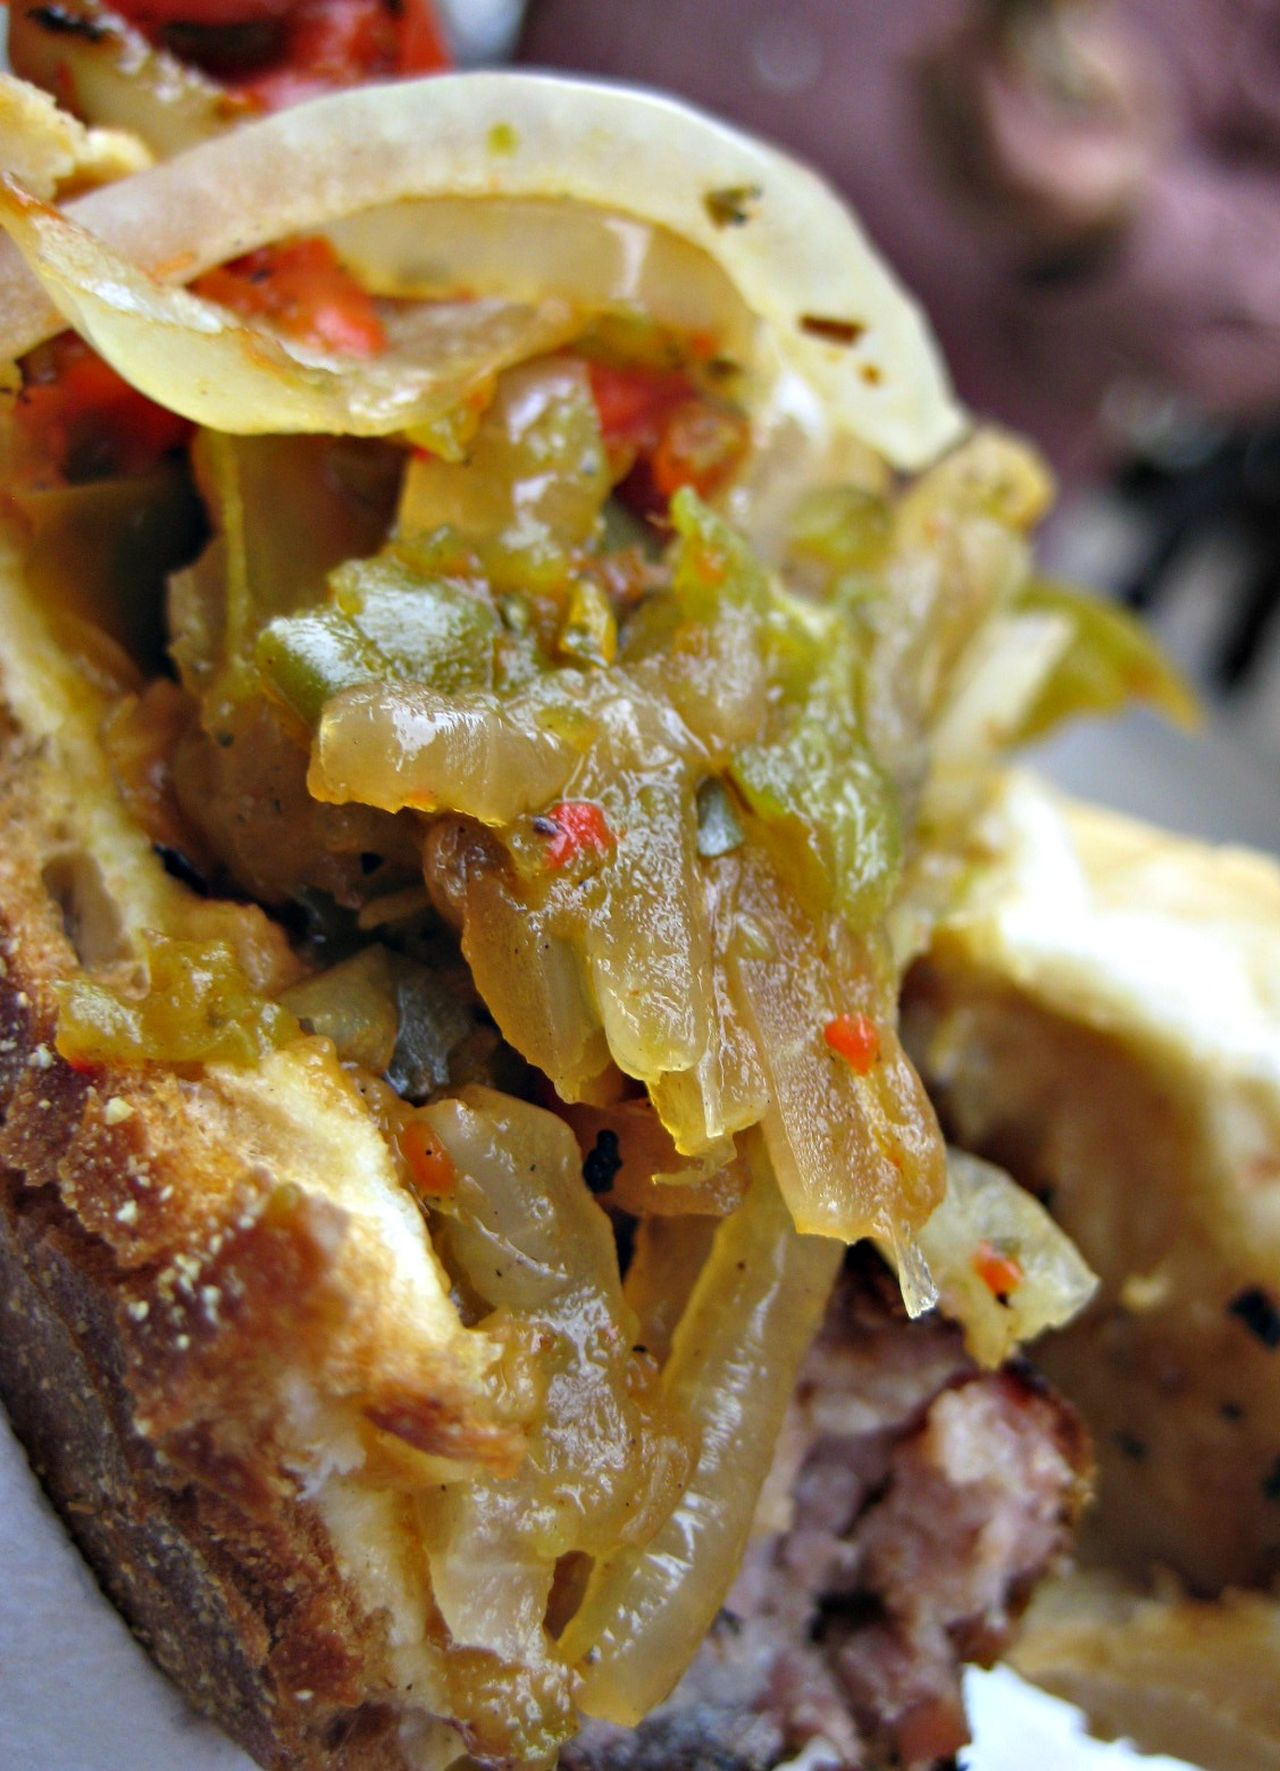 Close-up Food Food And Drink Food Photography Food Porn Freshness Indulgence Little Italy Meal Onions Peppers Peppers And Onions Ready-to-eat San Gennaro Sausage And Peppers Temptation Foodie Foodphotography Foodporn